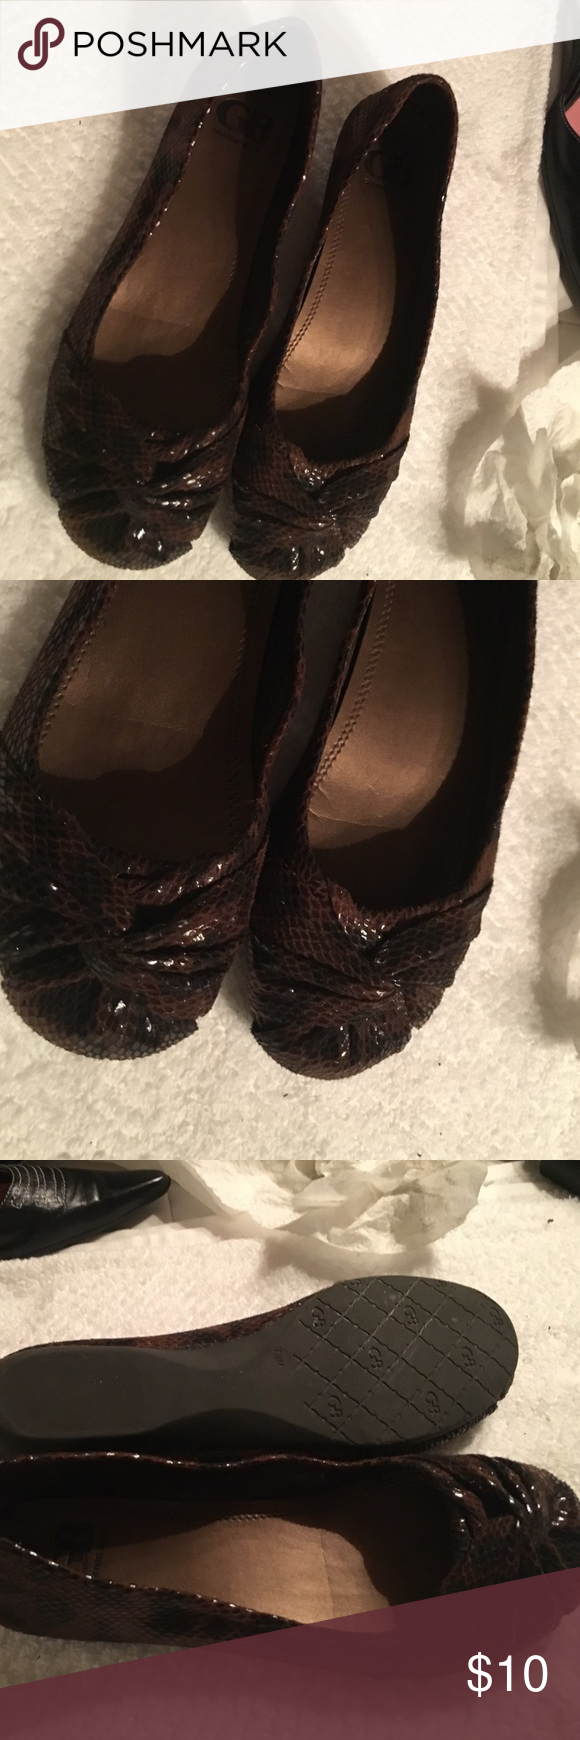 Selling this Gianni Bini Reptile Flats on Poshmark! My username is: dsf58. #shopmycloset #poshmark #fashion #shopping #style #forsale #Gianni Bini #Shoes